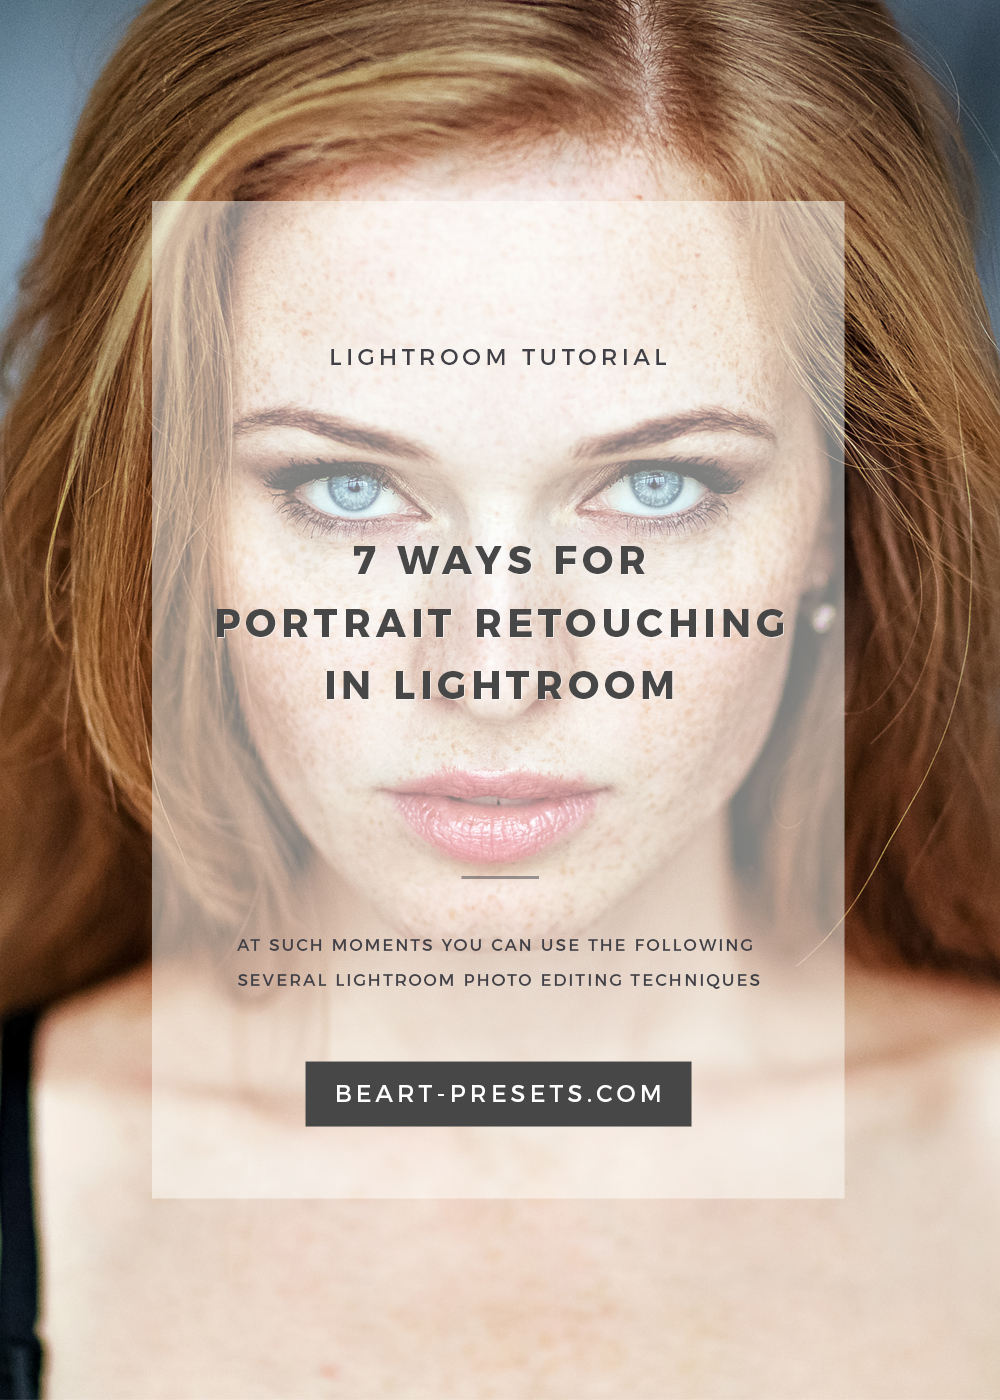 7 ways for portrait retouching